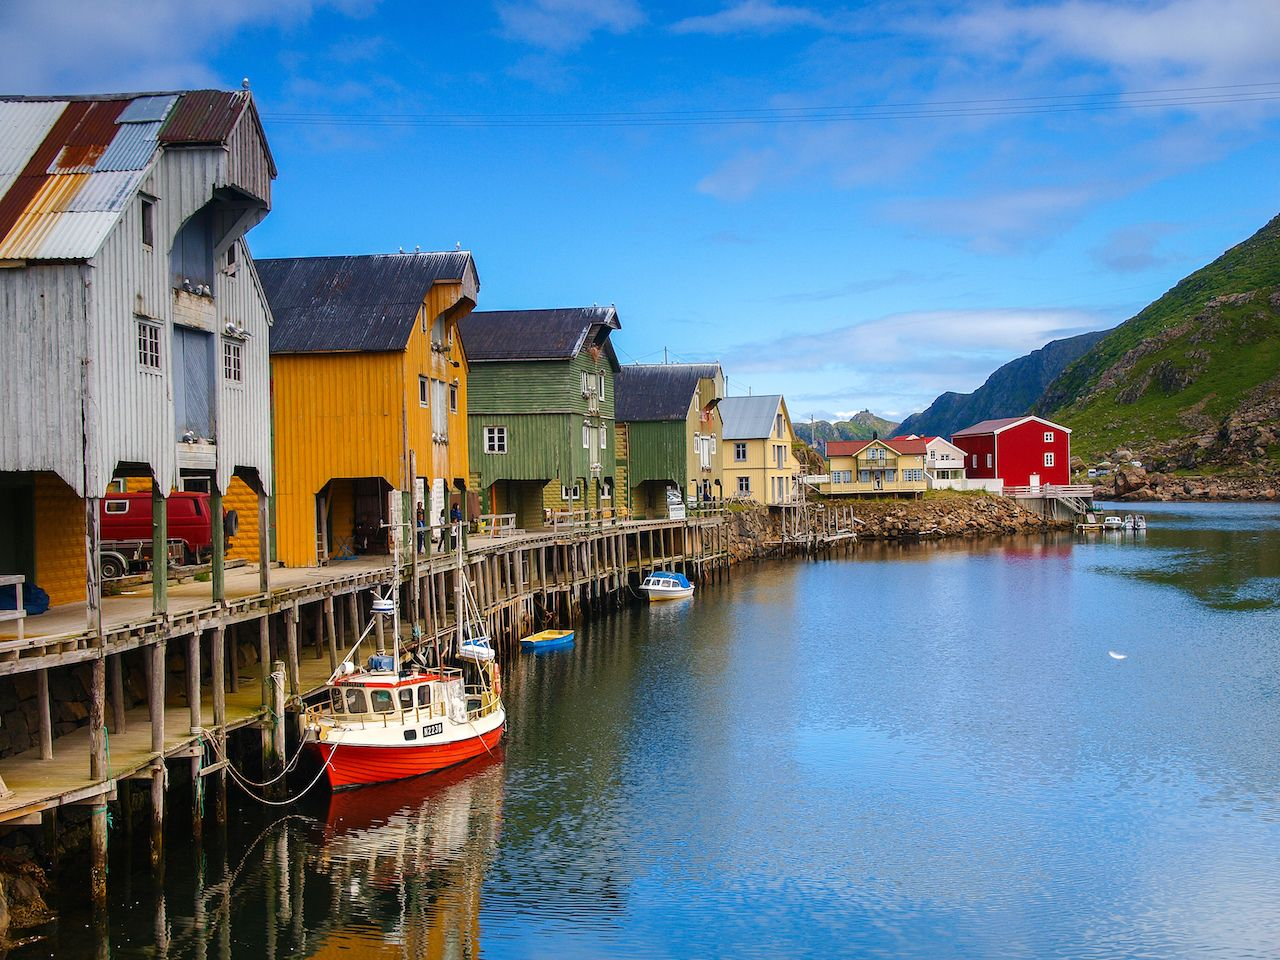 Harbor in Norway